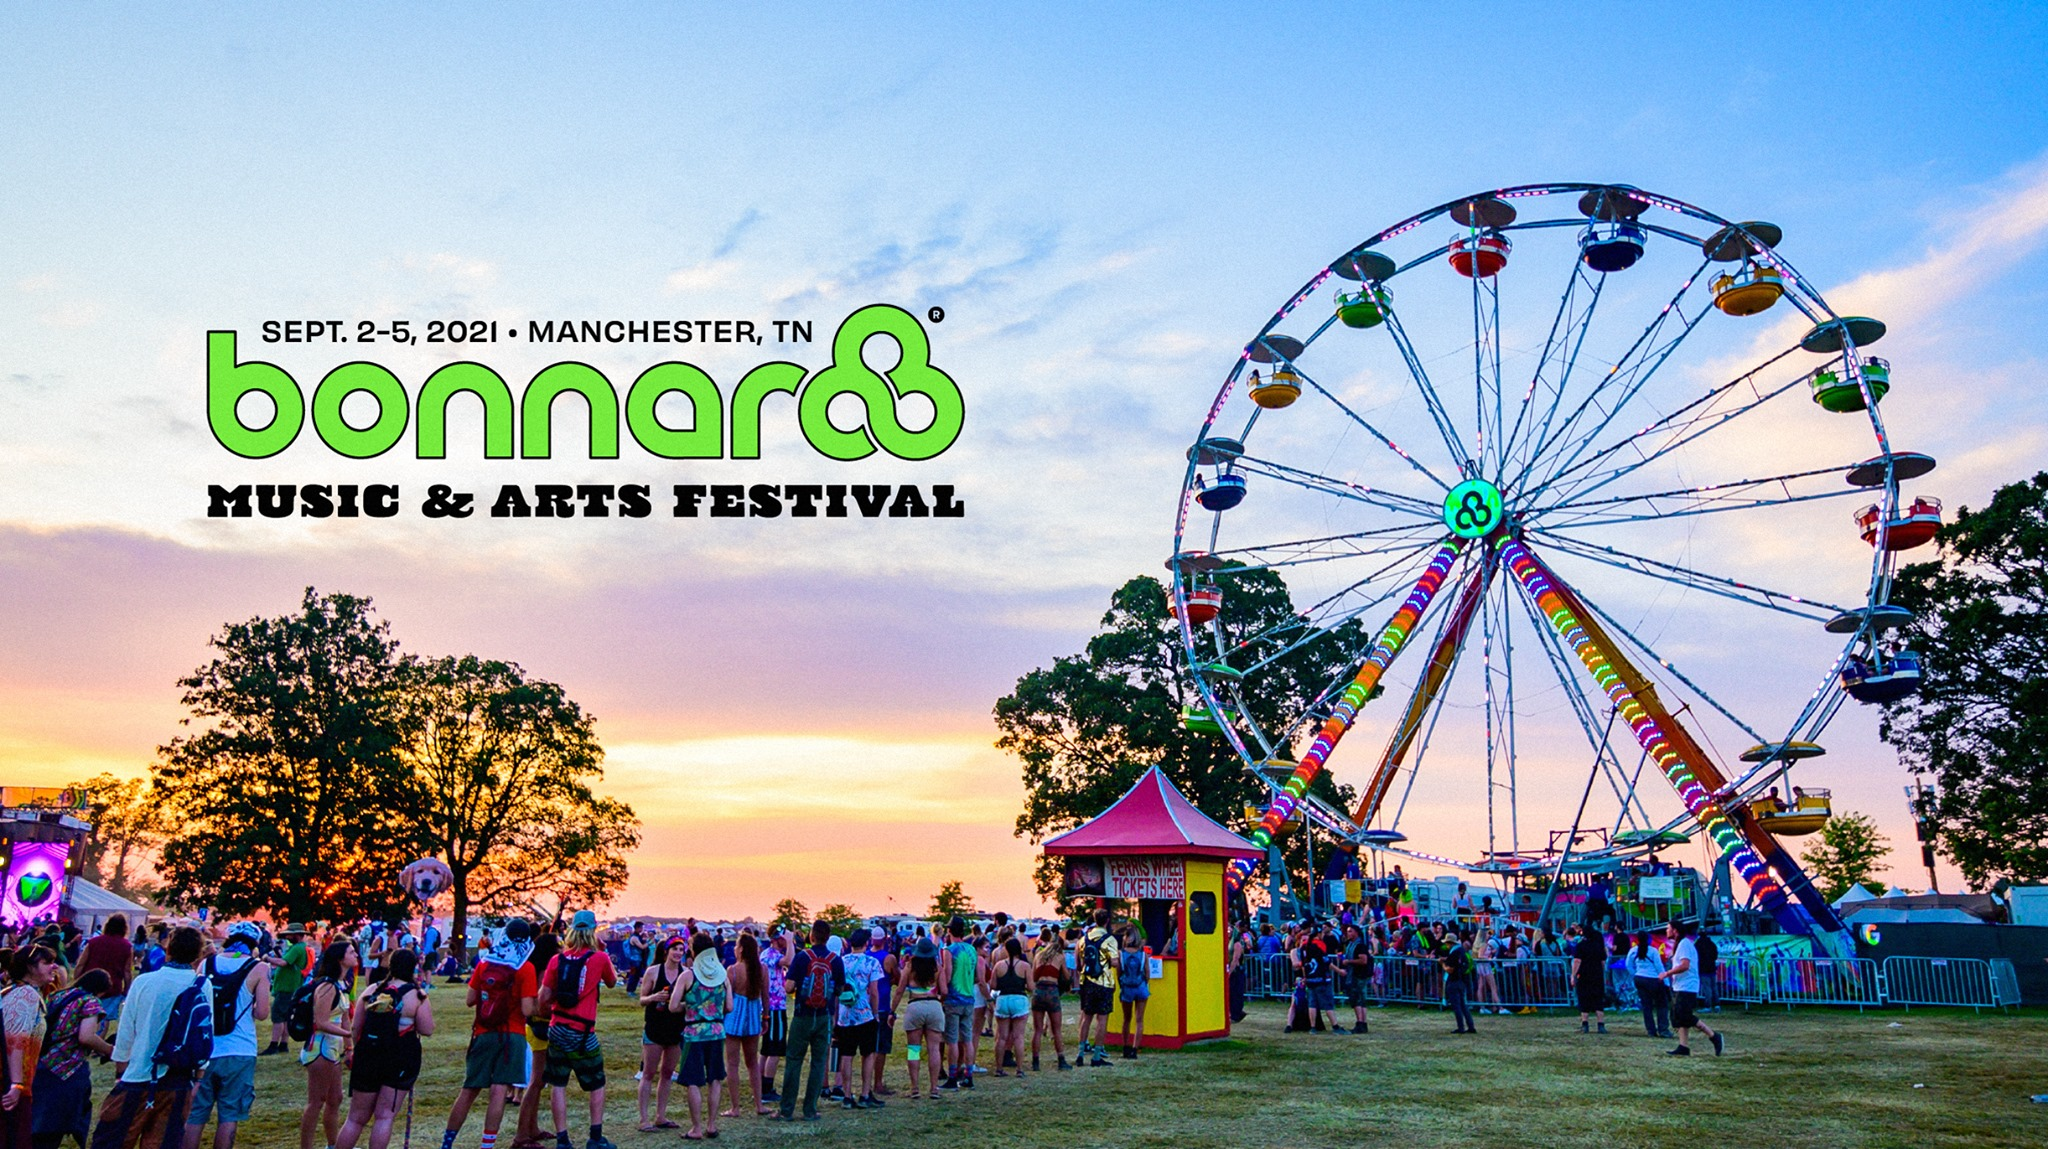 Bonnaroo Music and Arts Festival 2021 title banner